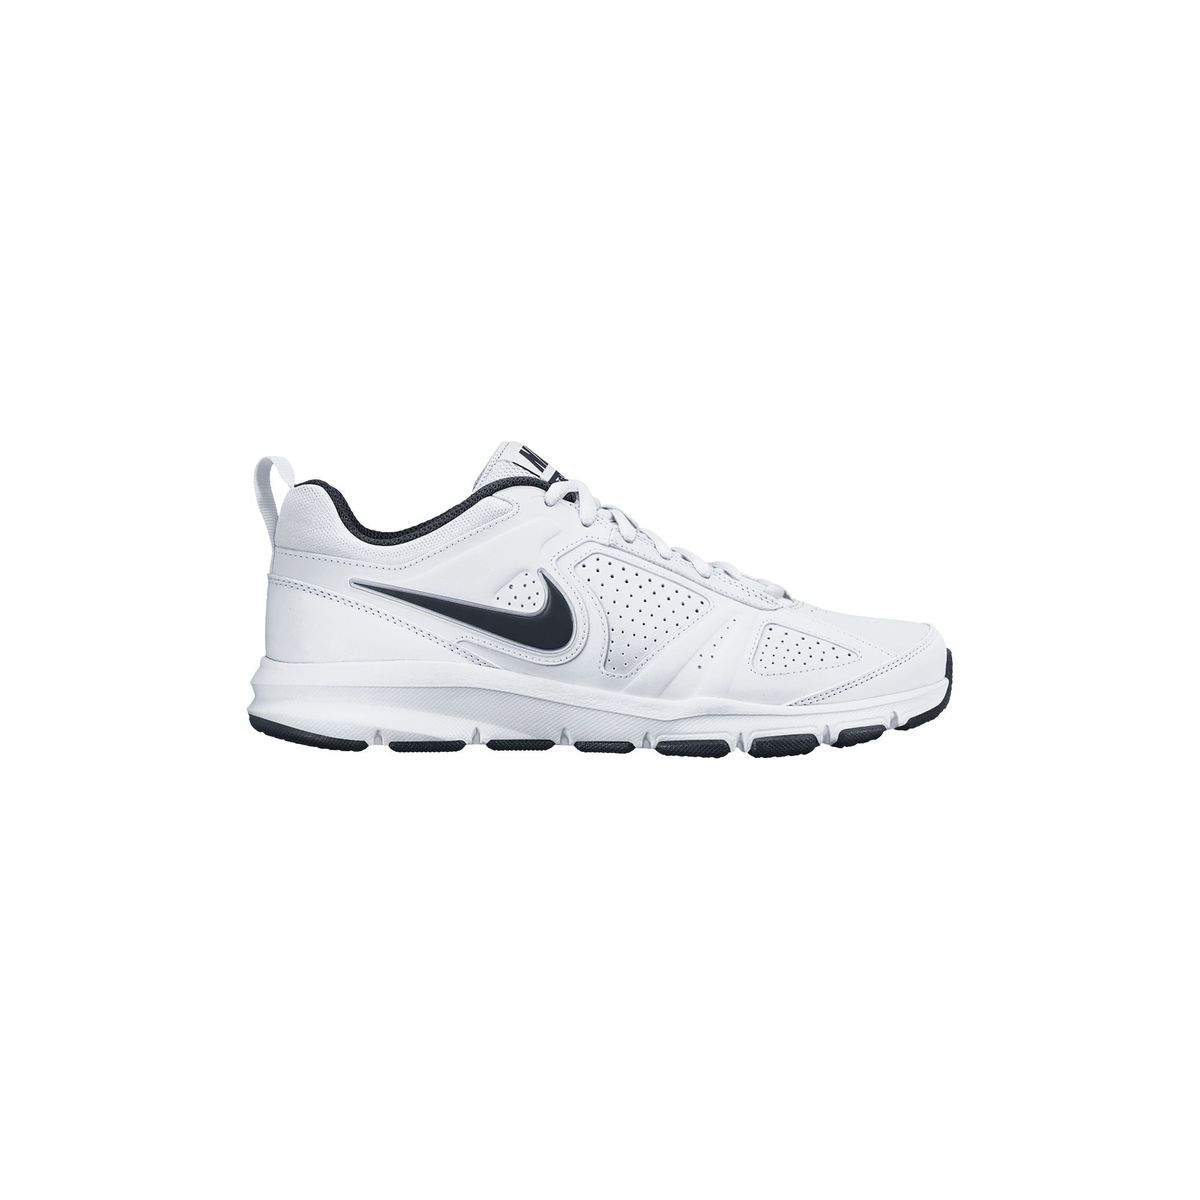 6e5446a09119 Men u0027s Nike T-Lite XI SL Cross Training Shoe .